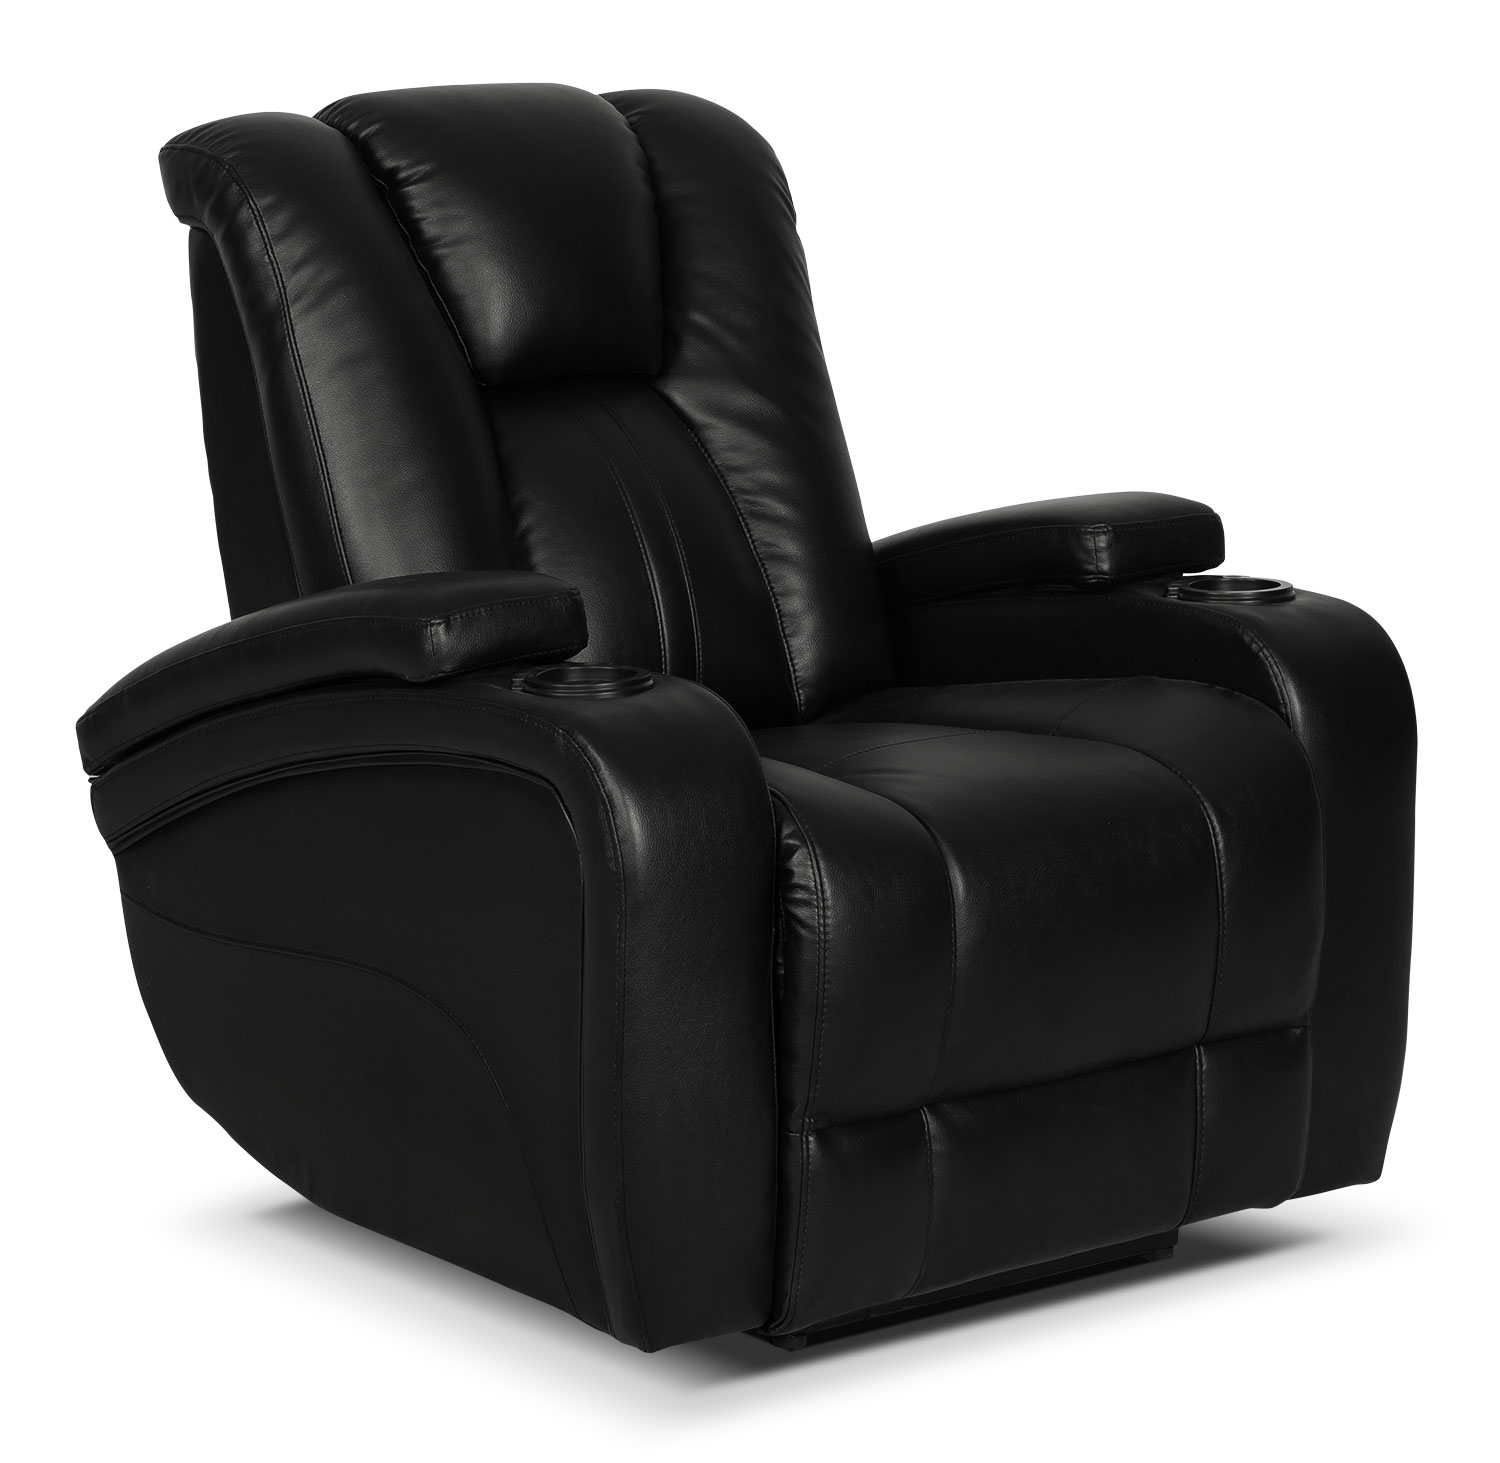 Zander Bonded Leather Power Reclining Chair - Black